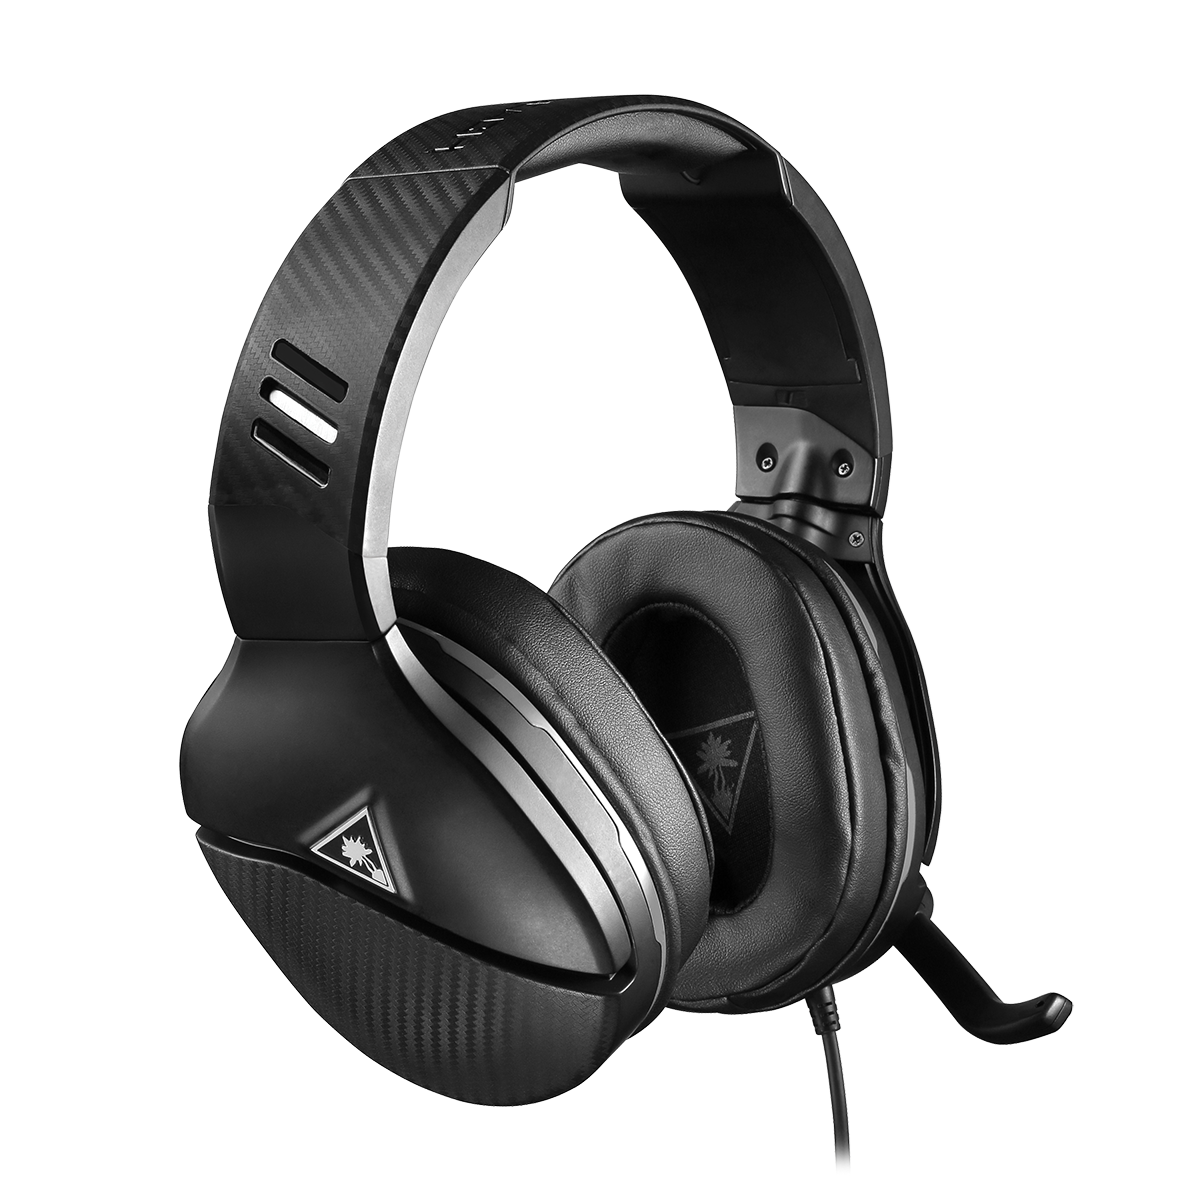 Recon 200 Gaming Headset – Turtle Beach®